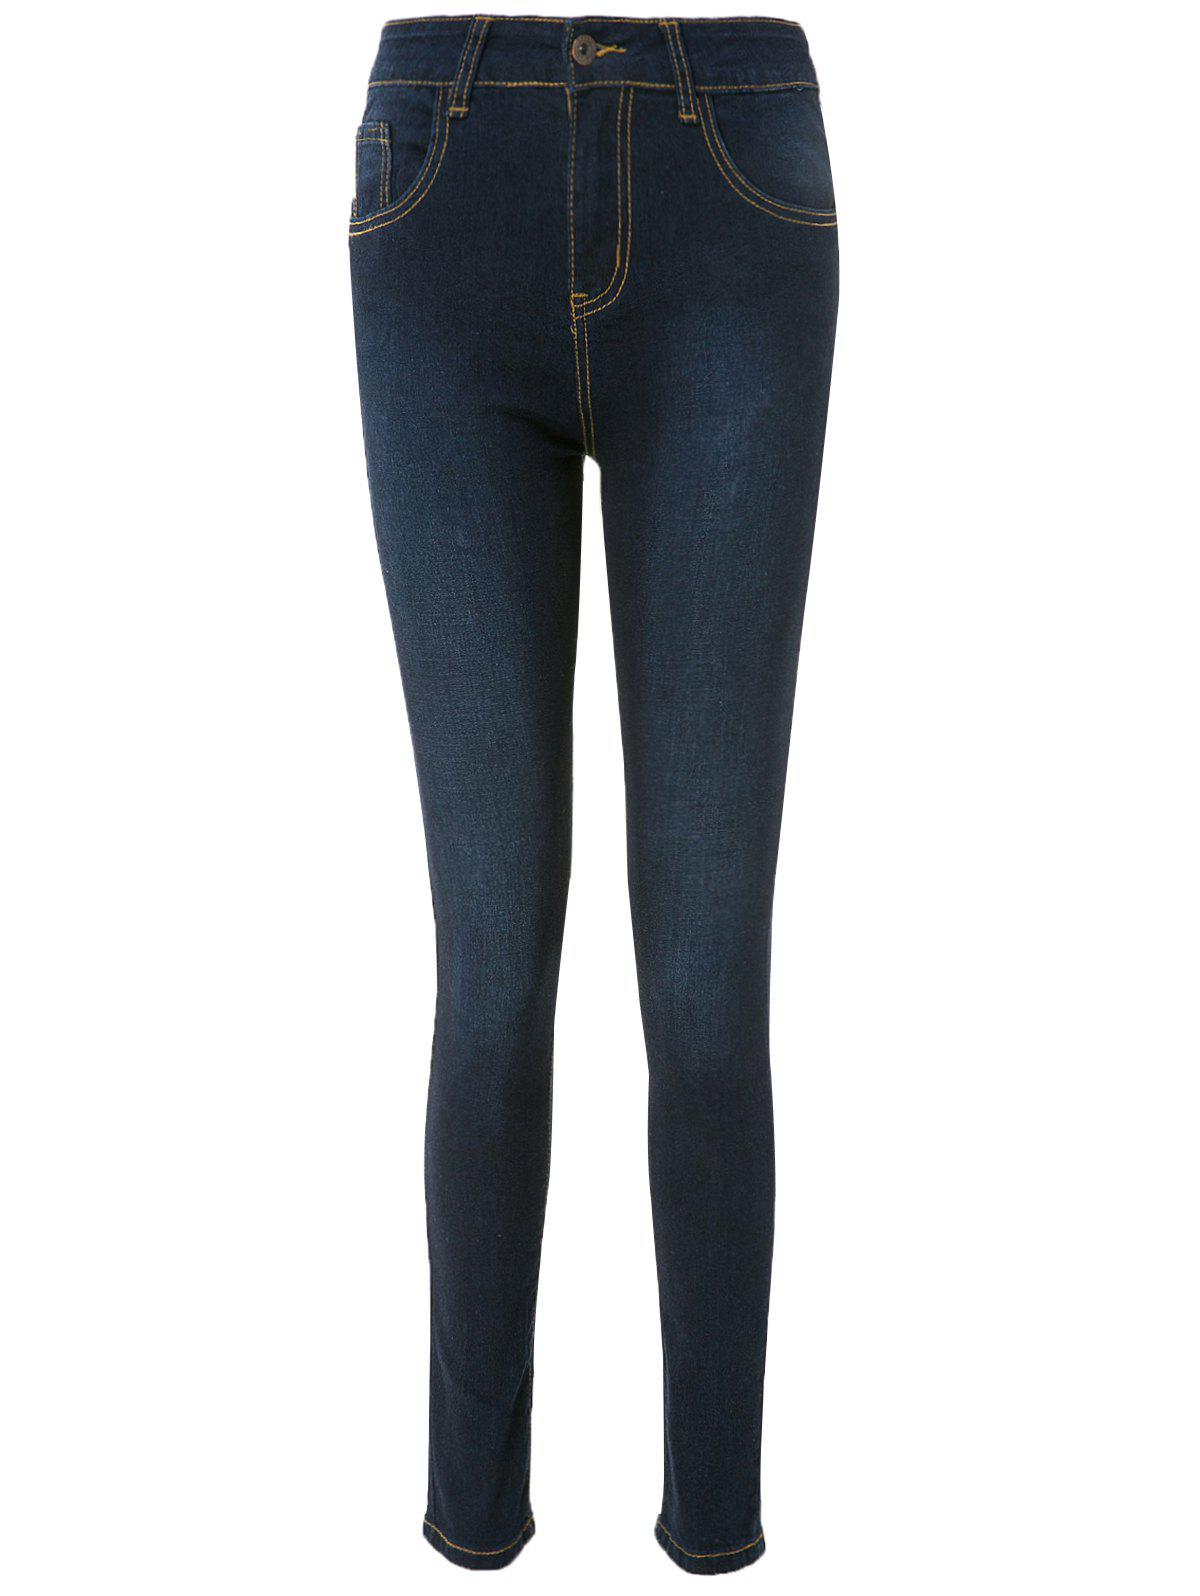 Unique High Waisted Skinny Jeans